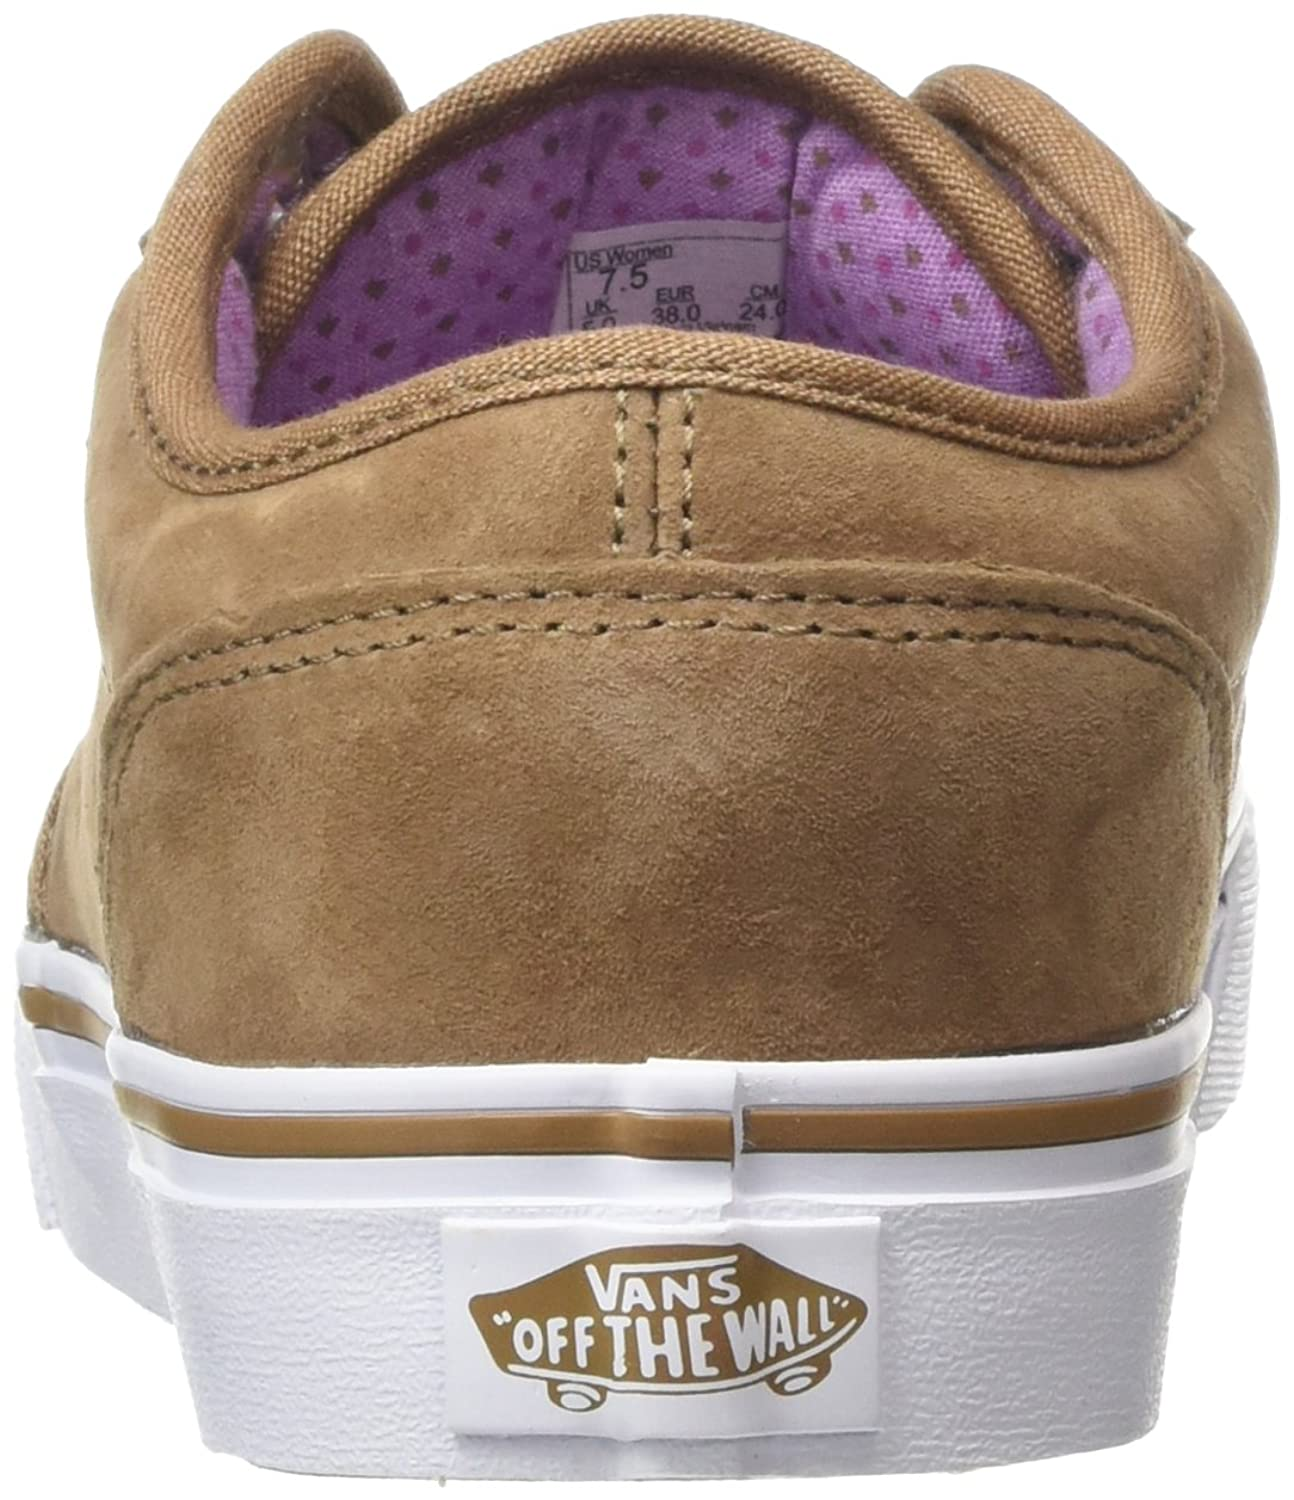 Vans Atwood, Baskets Basses Femme, Marron (MTE Toasted Coconut/African Violet), 35 EU